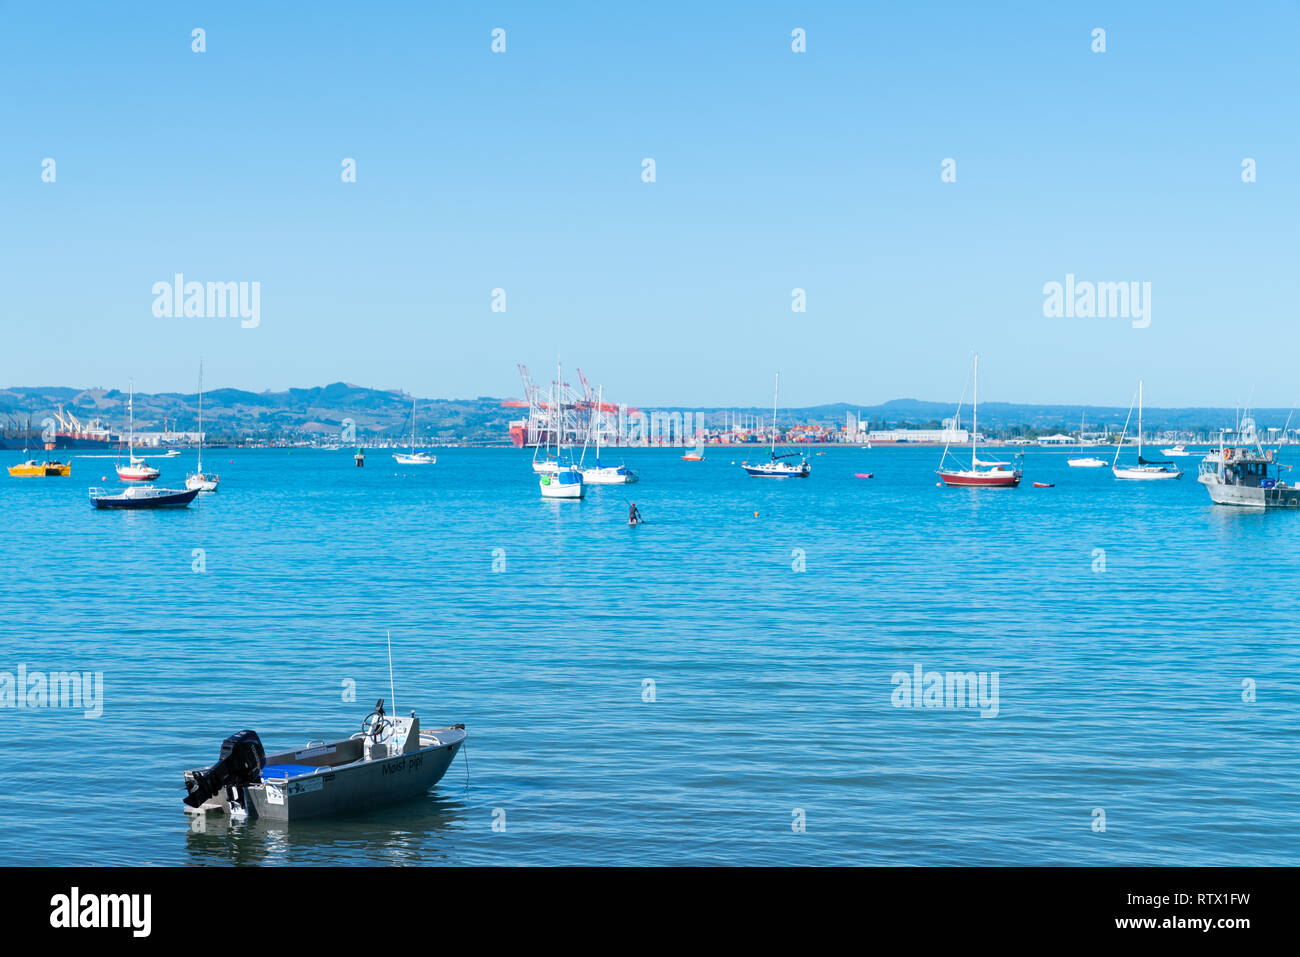 TAURANGA NEW ZEALAND - MARCH 3 2019; Moored pleasure boats in Pilot Bay with Sulphur Point container wharf in background - Stock Image